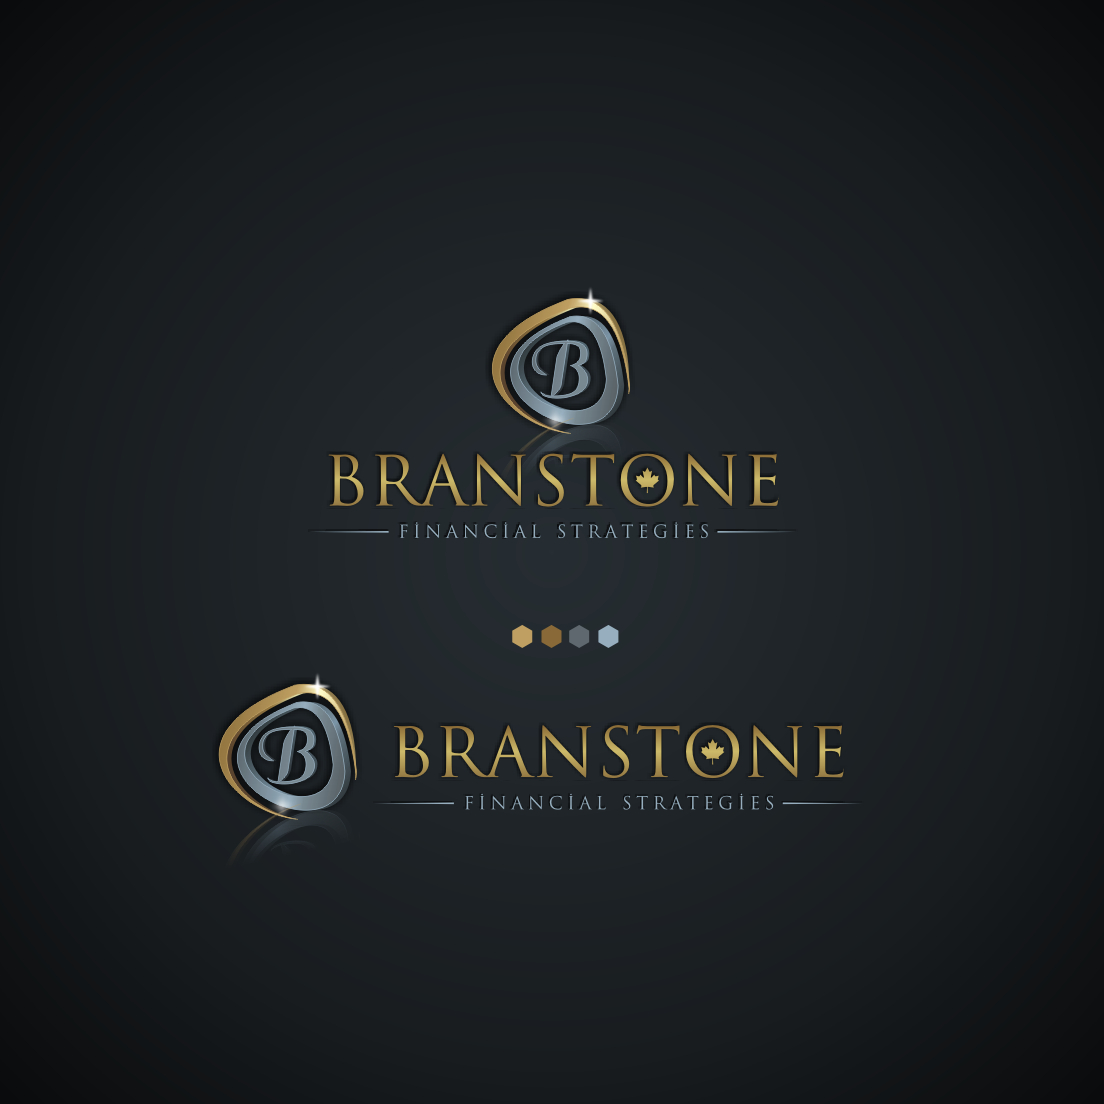 Logo Design by Think - Entry No. 342 in the Logo Design Contest Inspiring Logo Design for Branstone Financial Strategies.